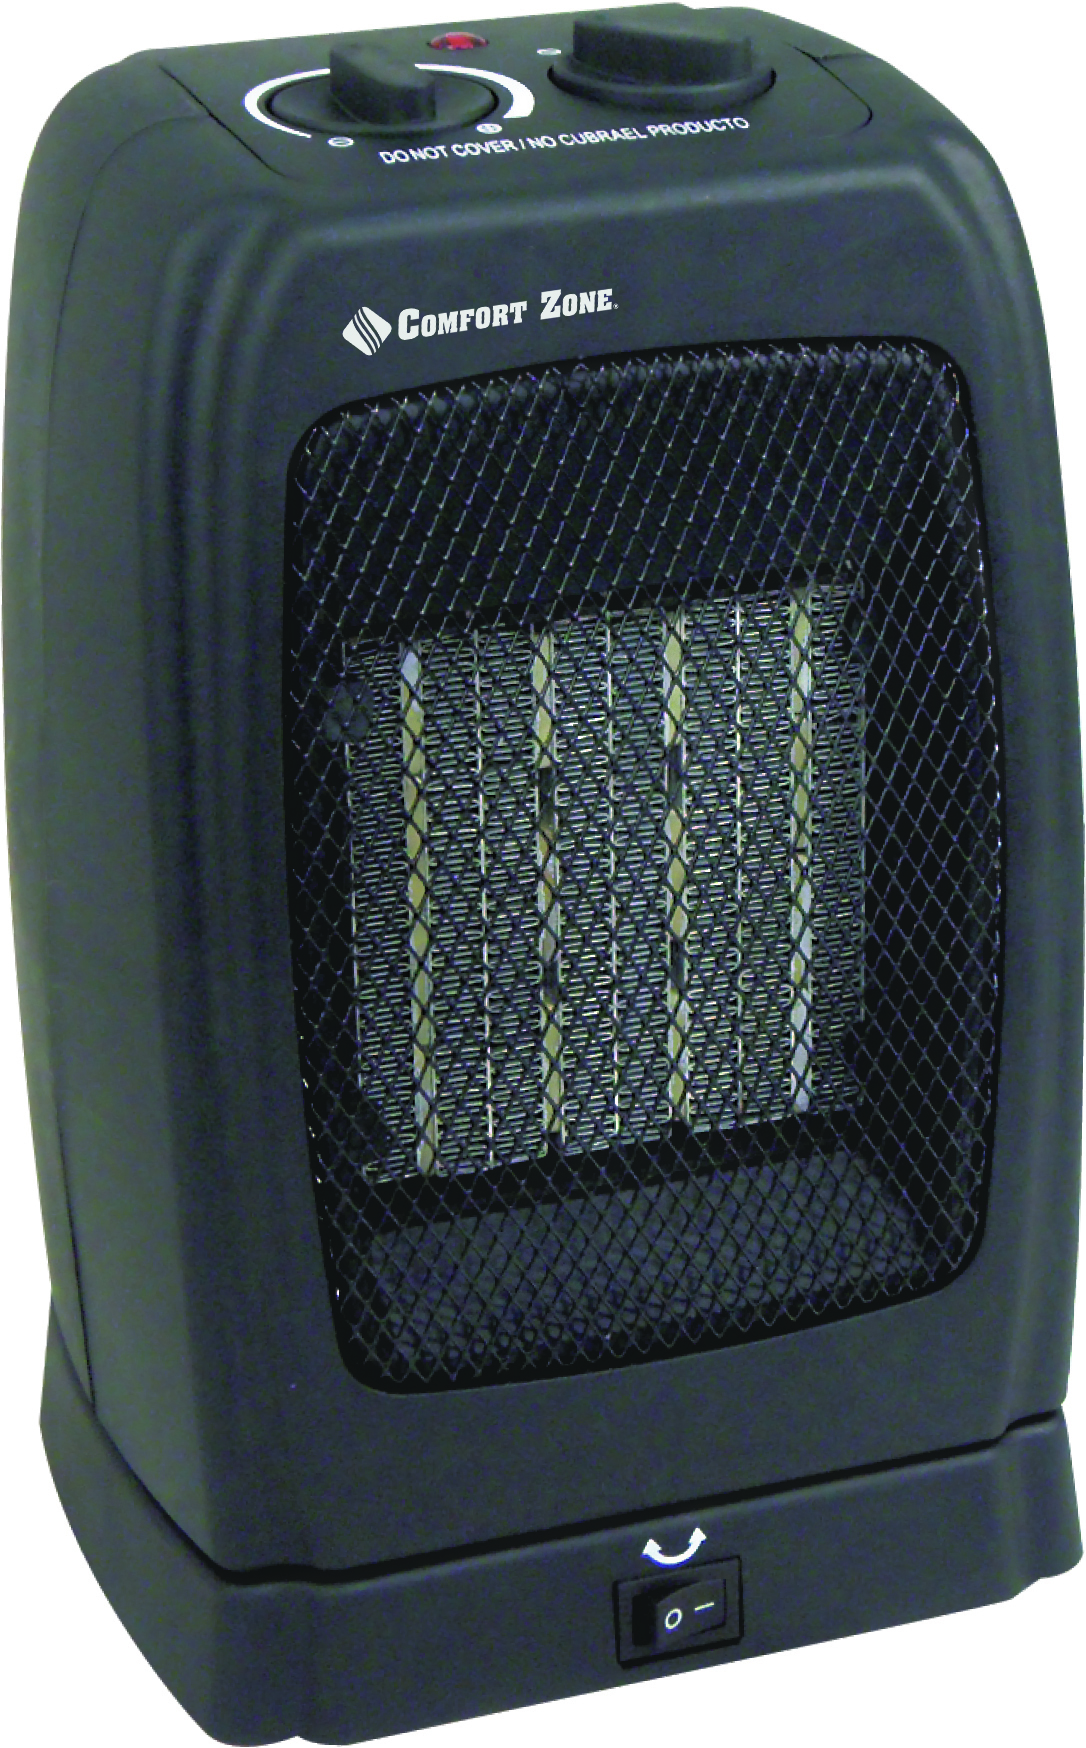 Comfort Zone Energy Efficient Ceramic Heater My Cooling